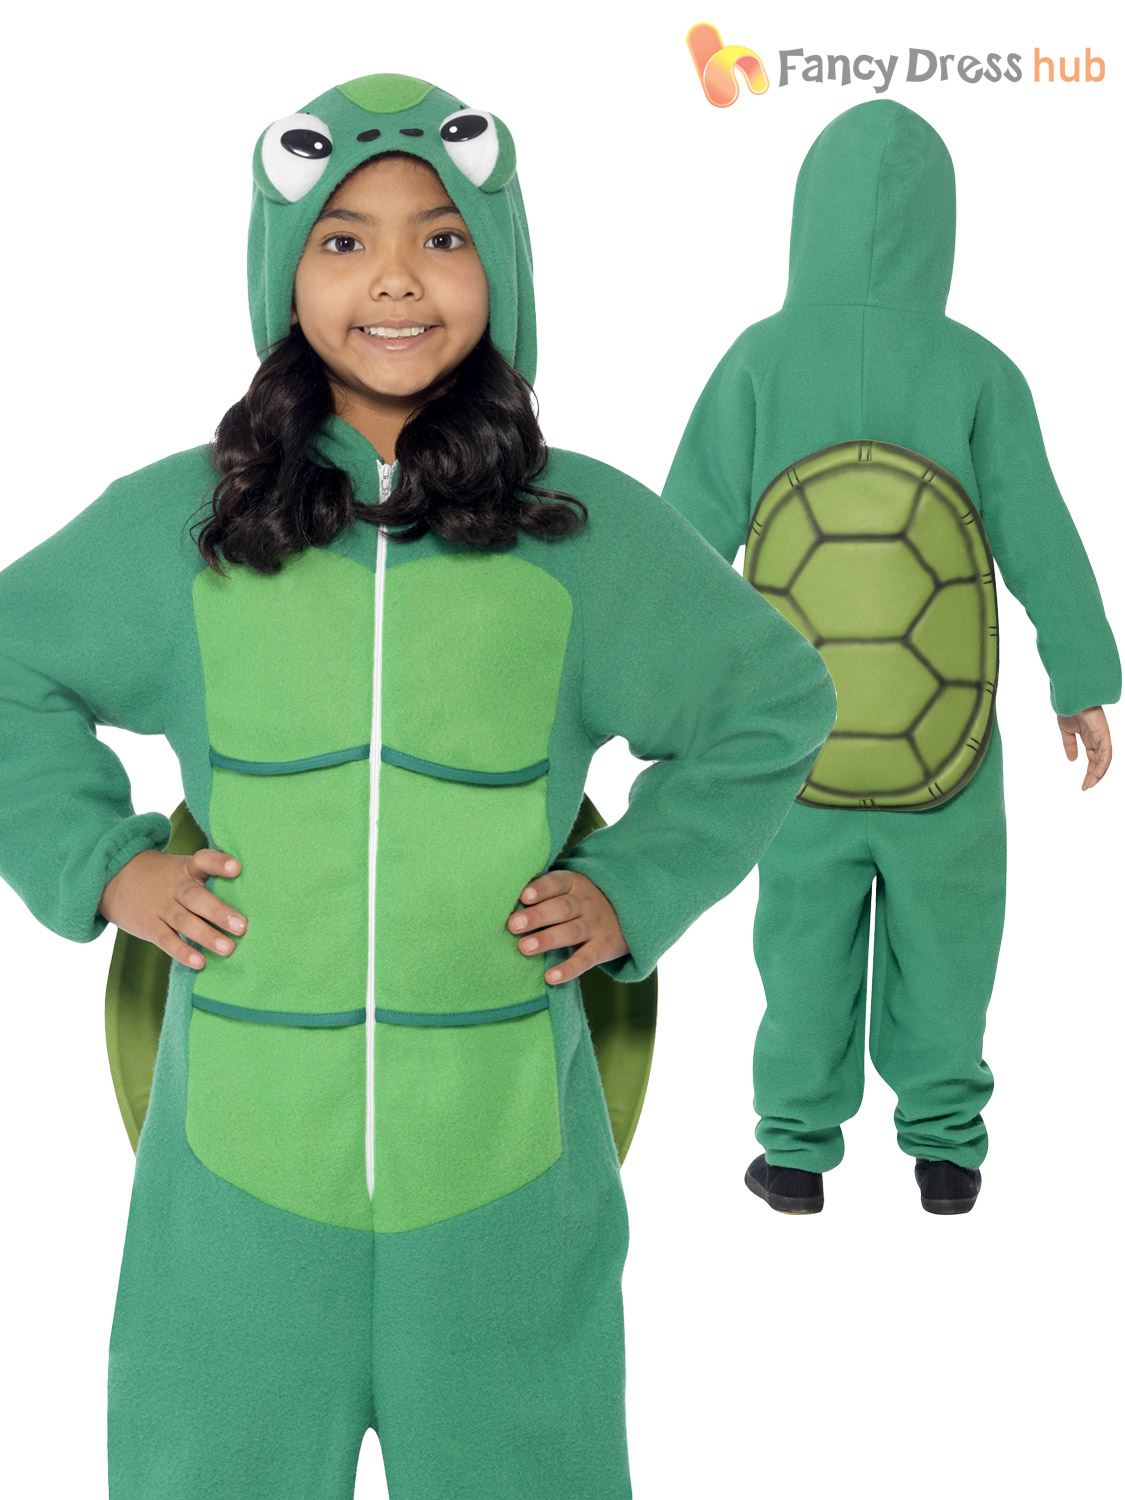 We have collected a lot of DIY costume ideas so you can have Turtle power or simply be a sexy turtle when you dress up. Whatever the case may be you should find an assortment of clever ideas and some really bad, yet simple ideas for dressing up as a Ninja Turtle. DIY Teenage Mutant Ninja Turtle Costumes We Like.